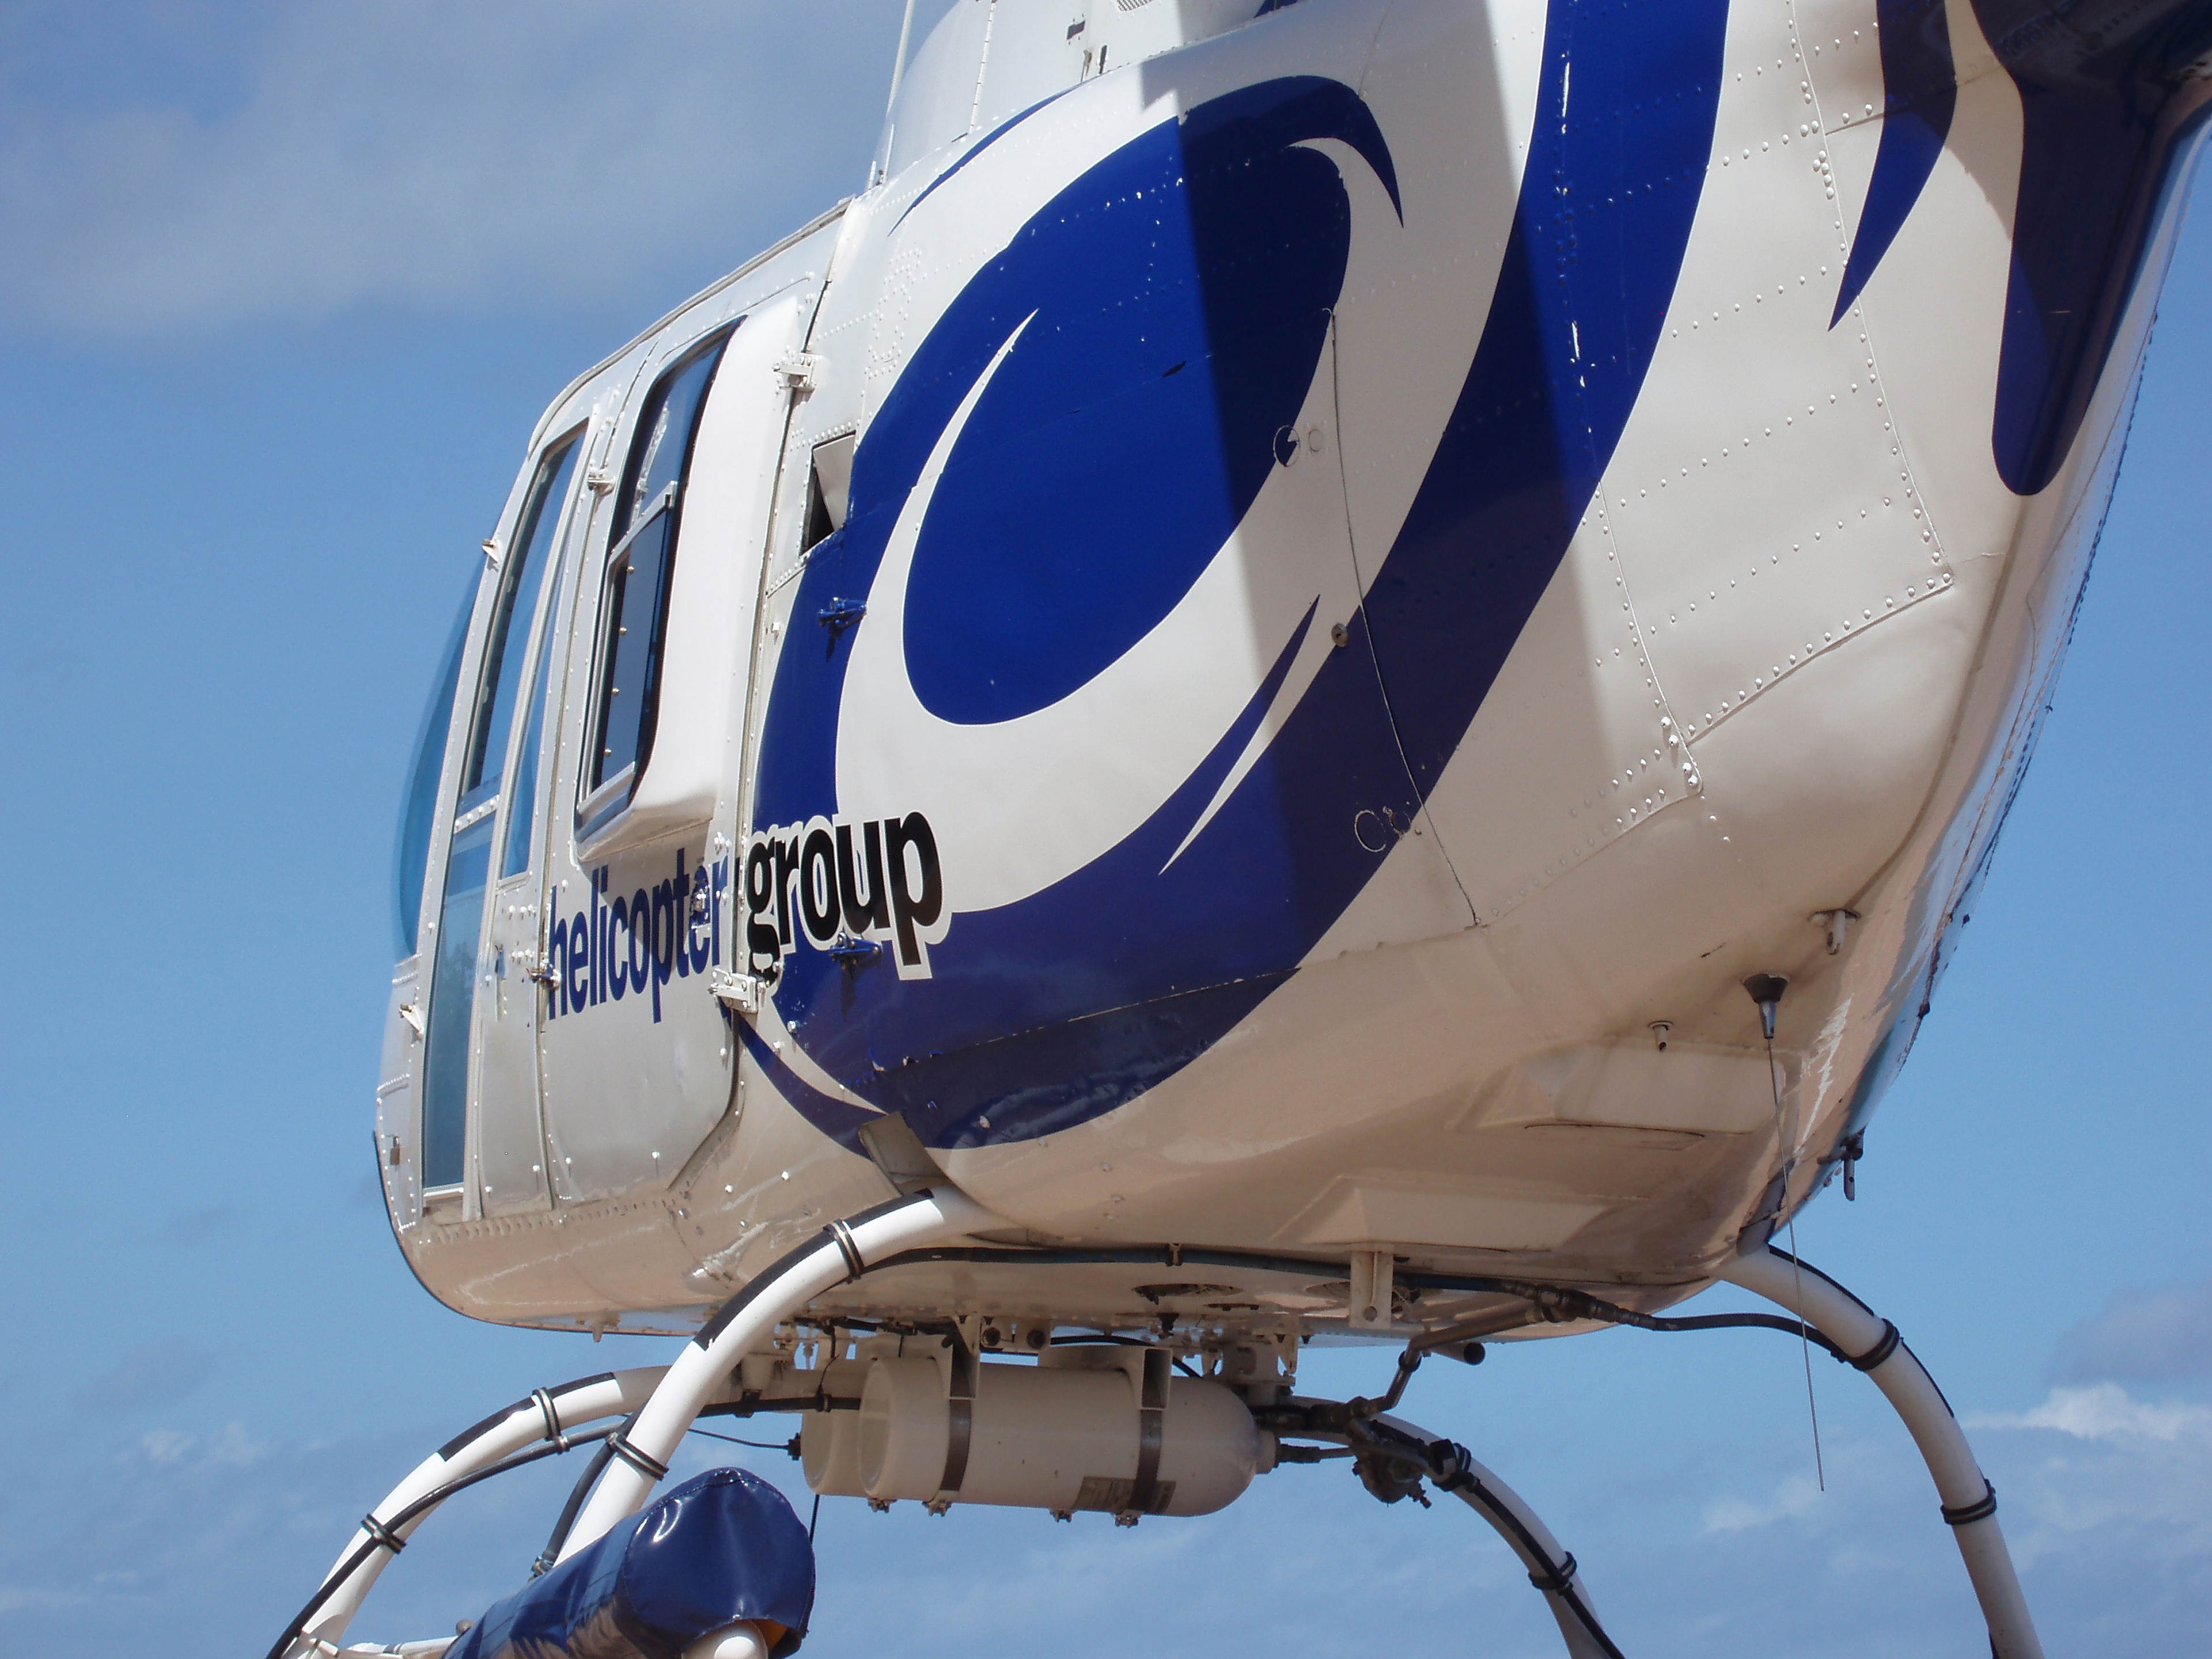 Close Up of Blue and White Helicopter Shot from Behind and Below